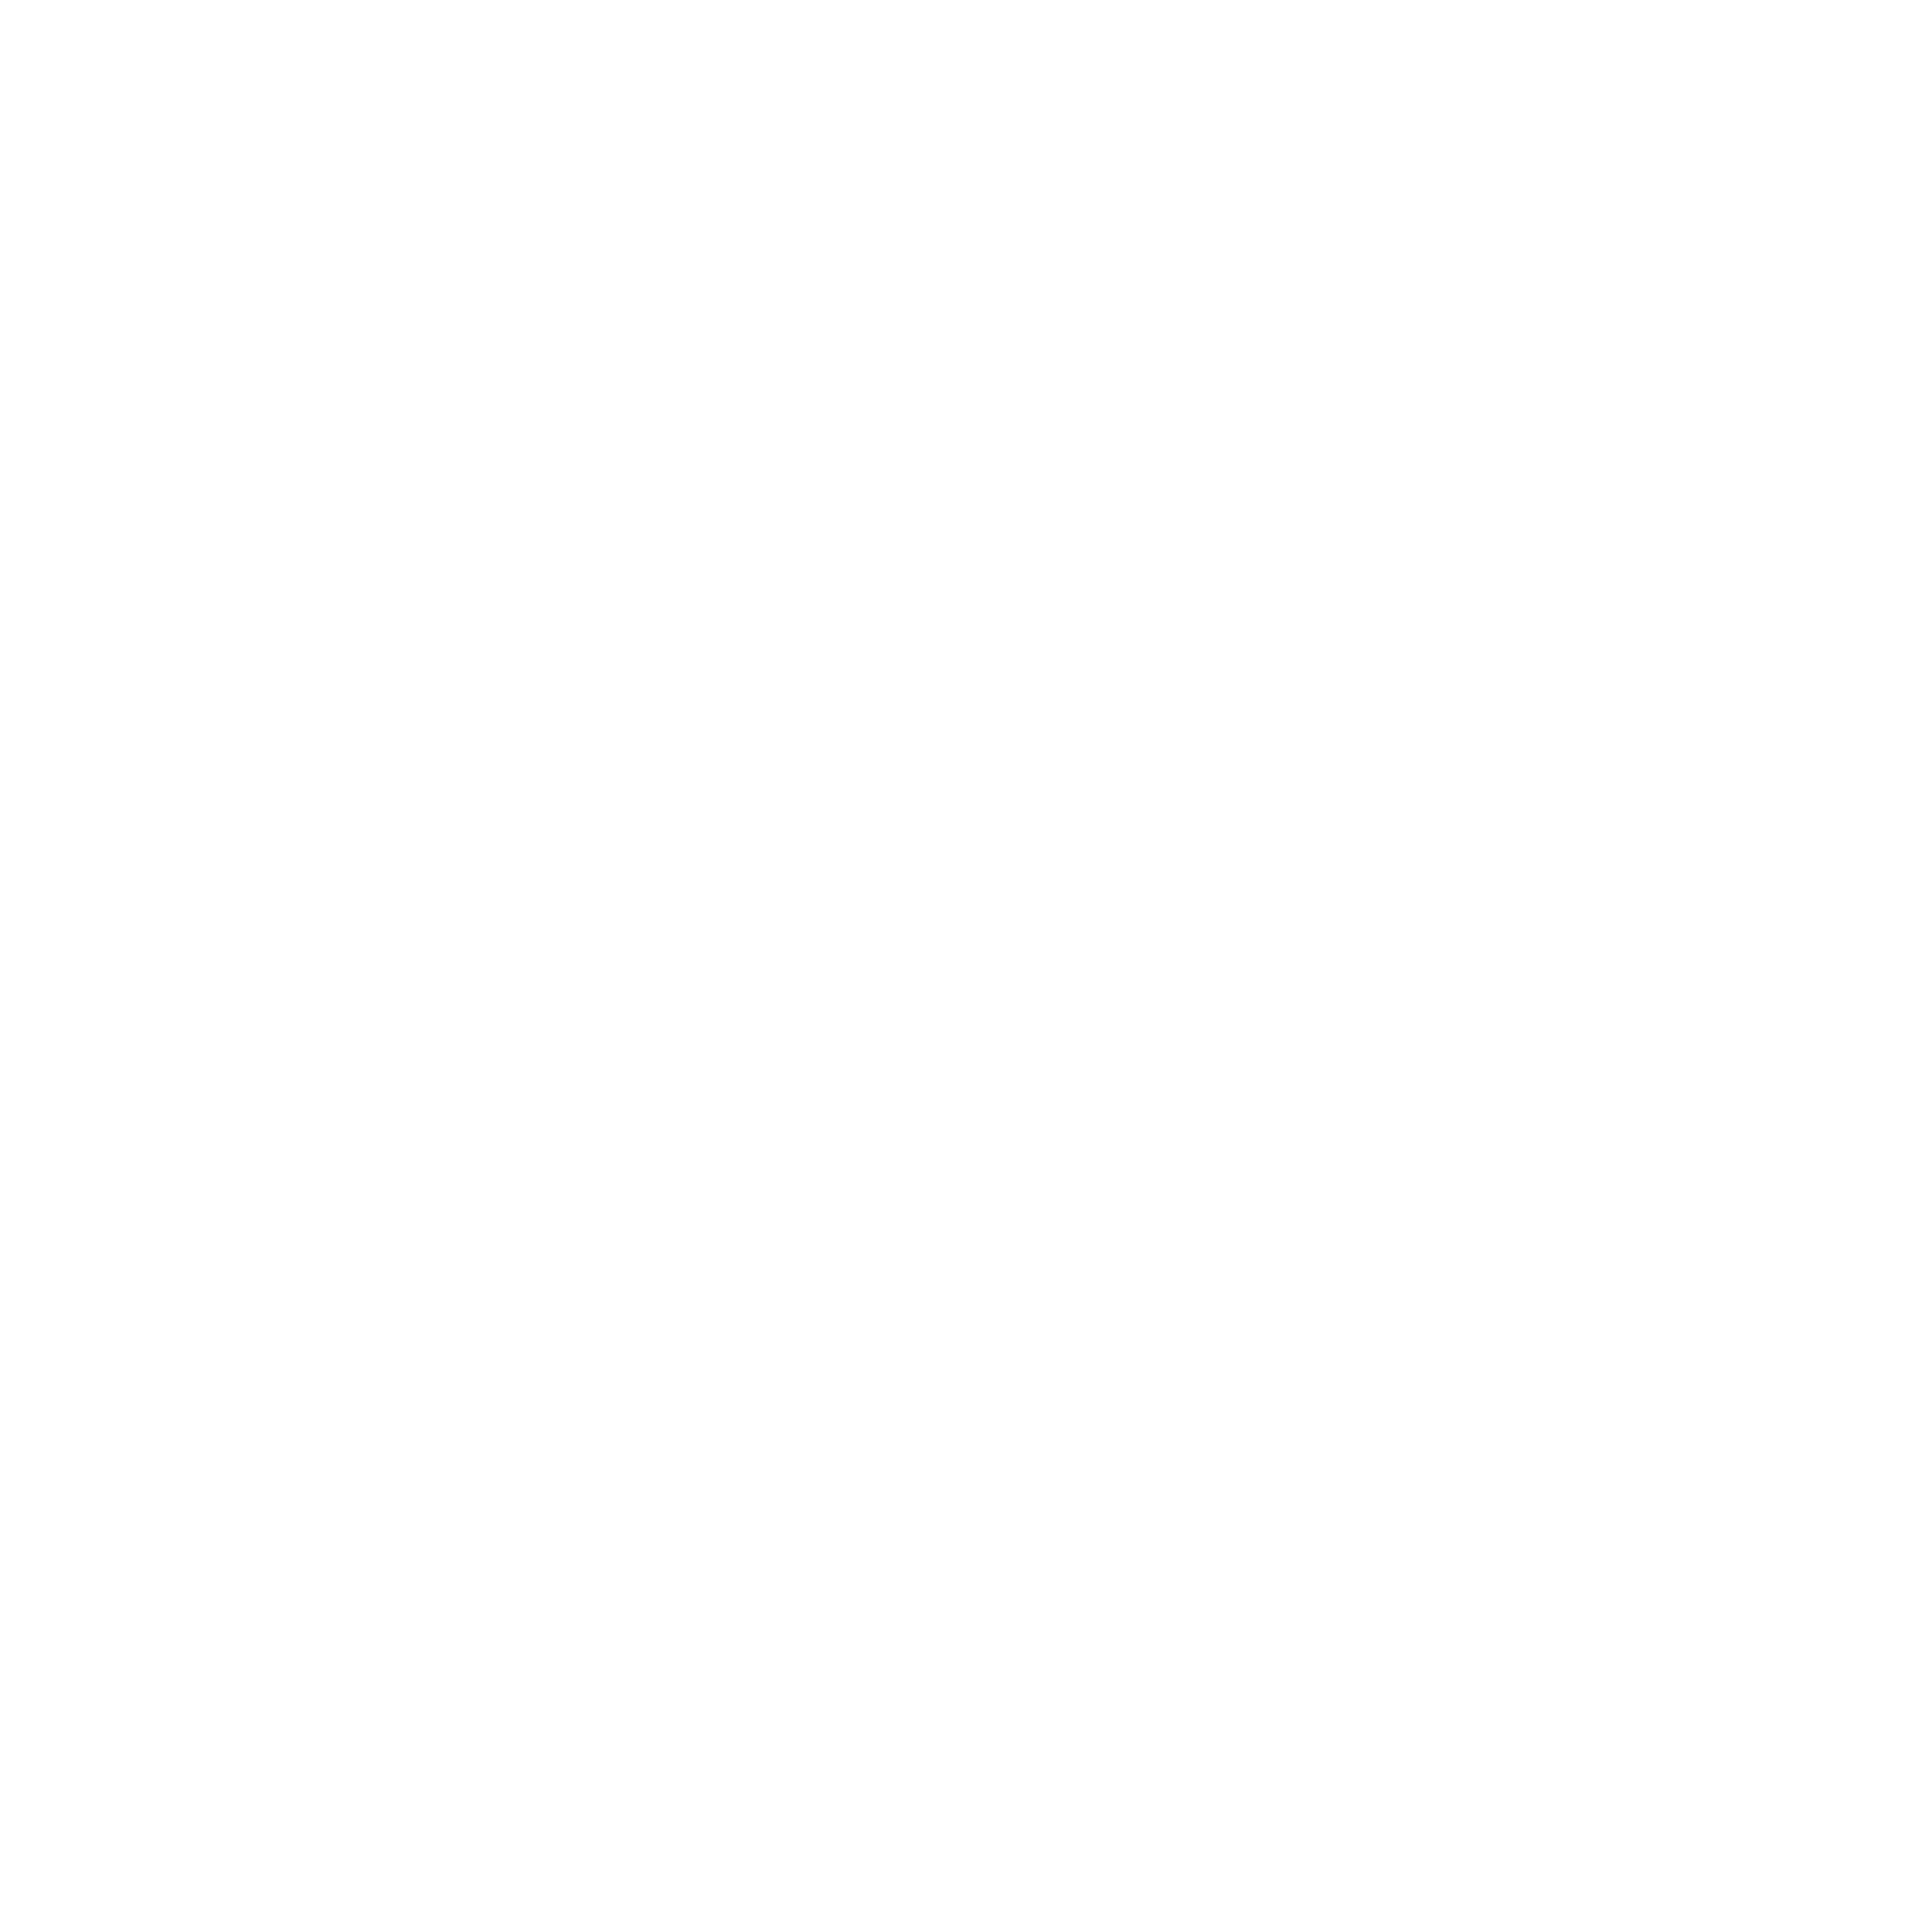 northplace vip logo